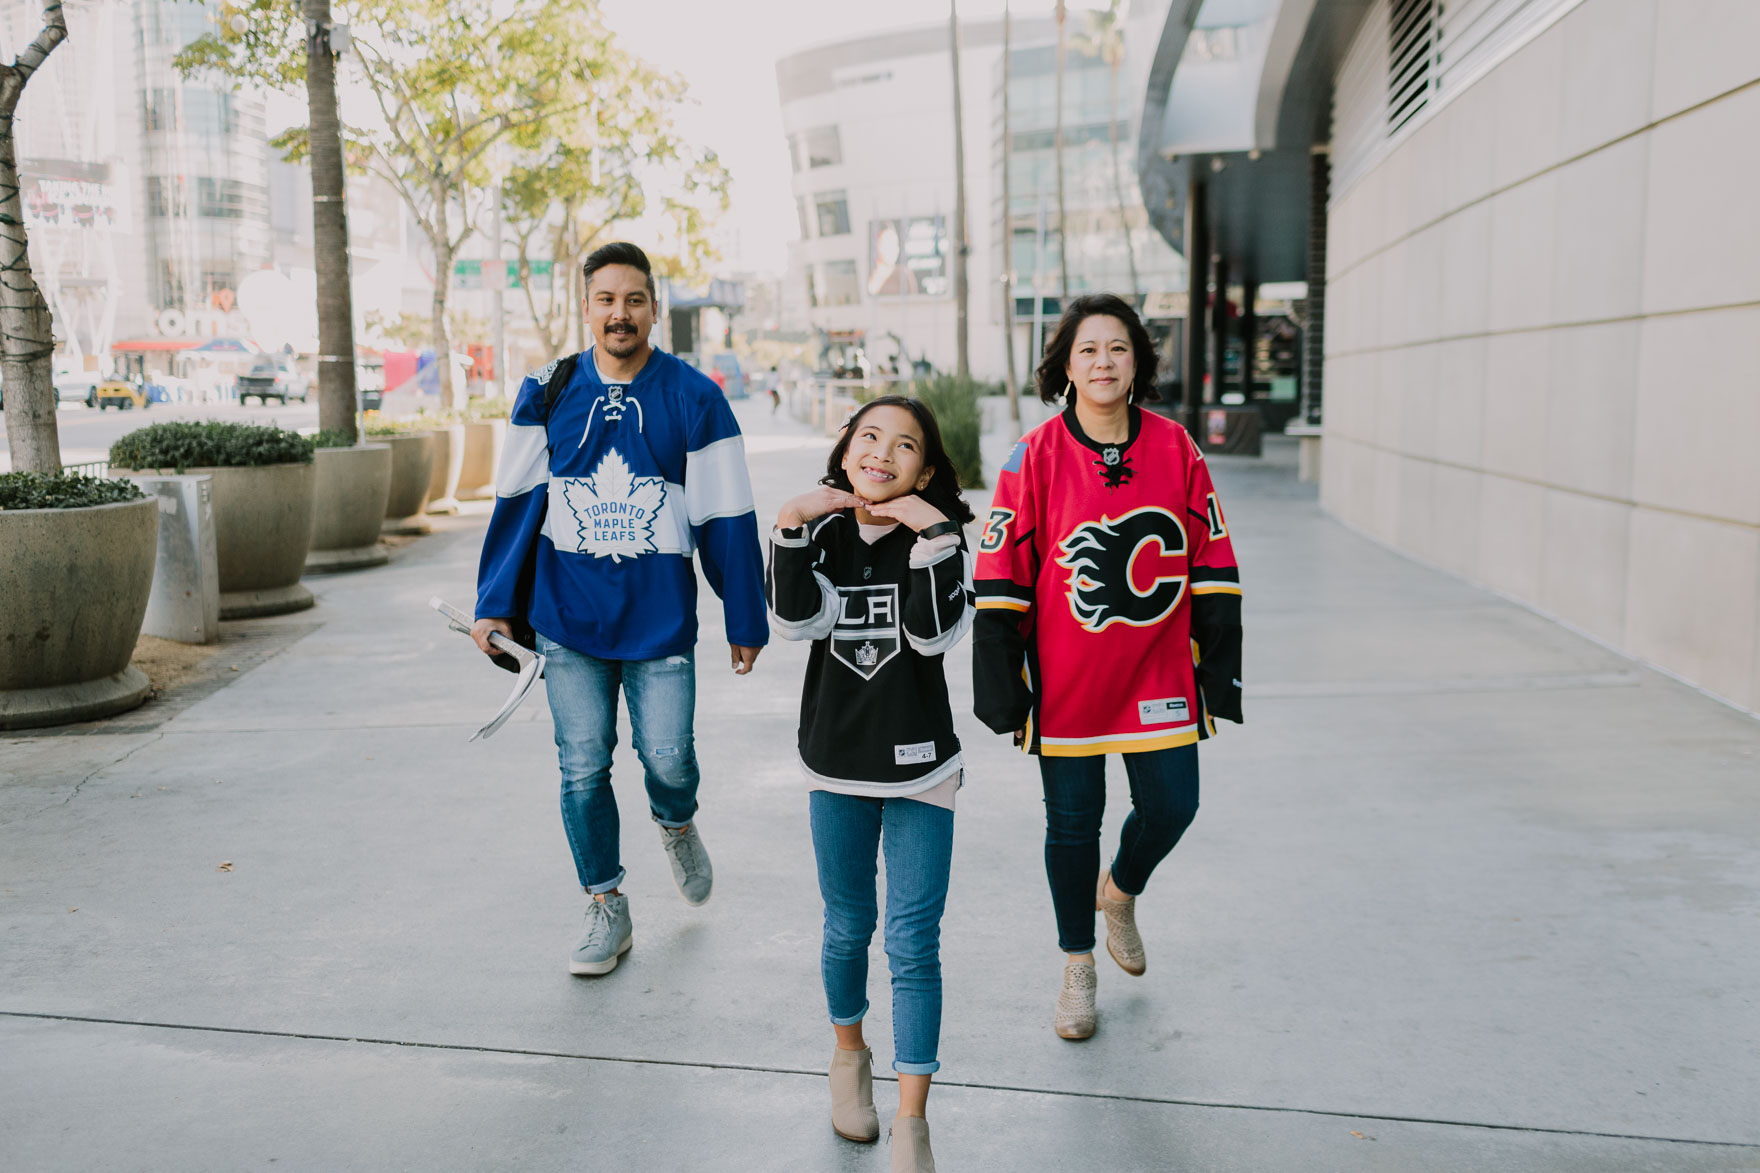 The Family that Hockeys Together – Photo by Let's Frolic Together